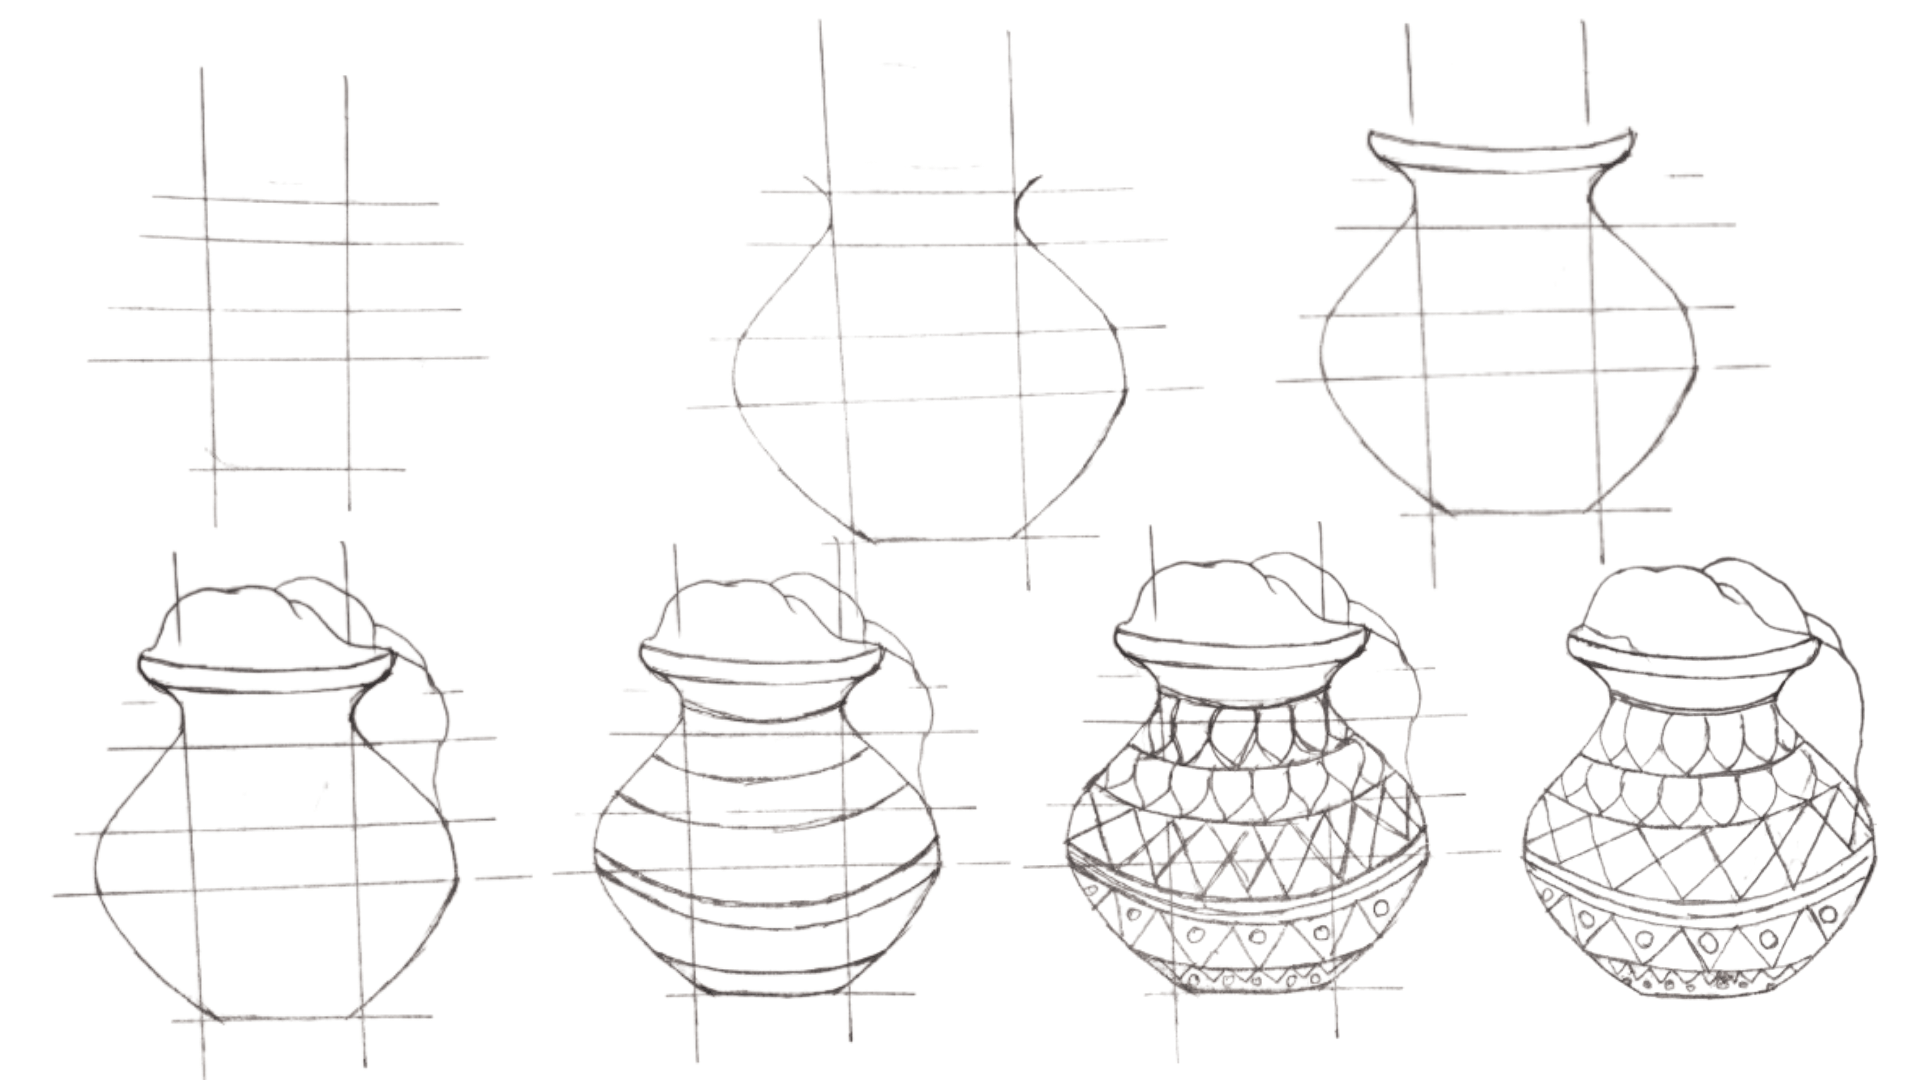 How To Draw Pongal Pot Easily Step By Step